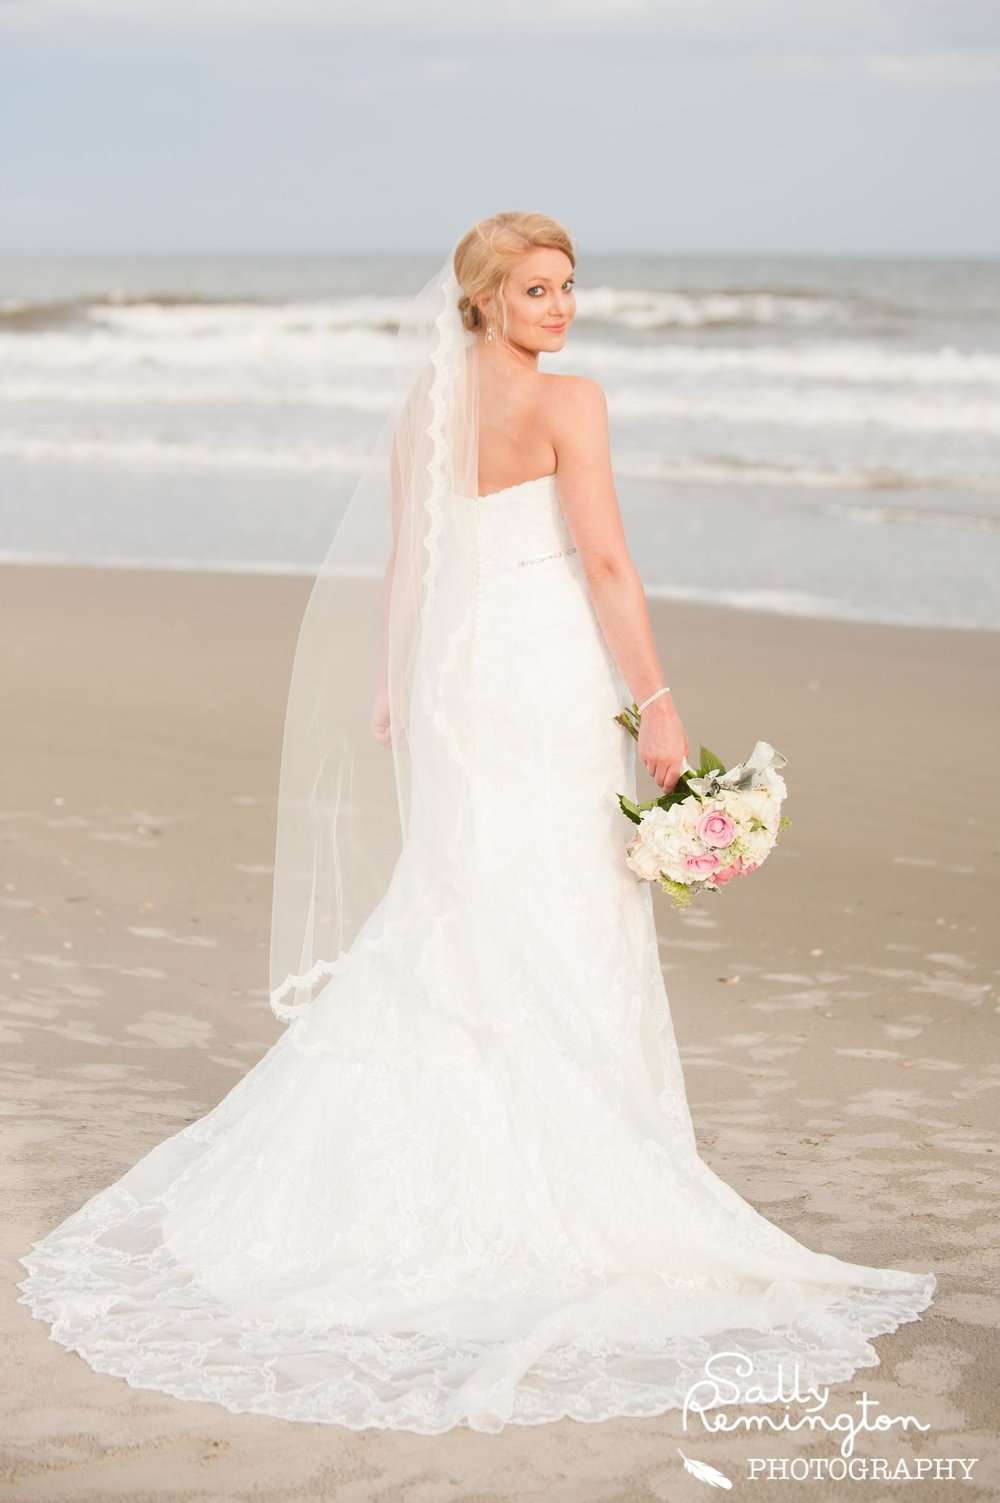 STEPHANIE'S ELEGANT BEACHSIDE WEDDING